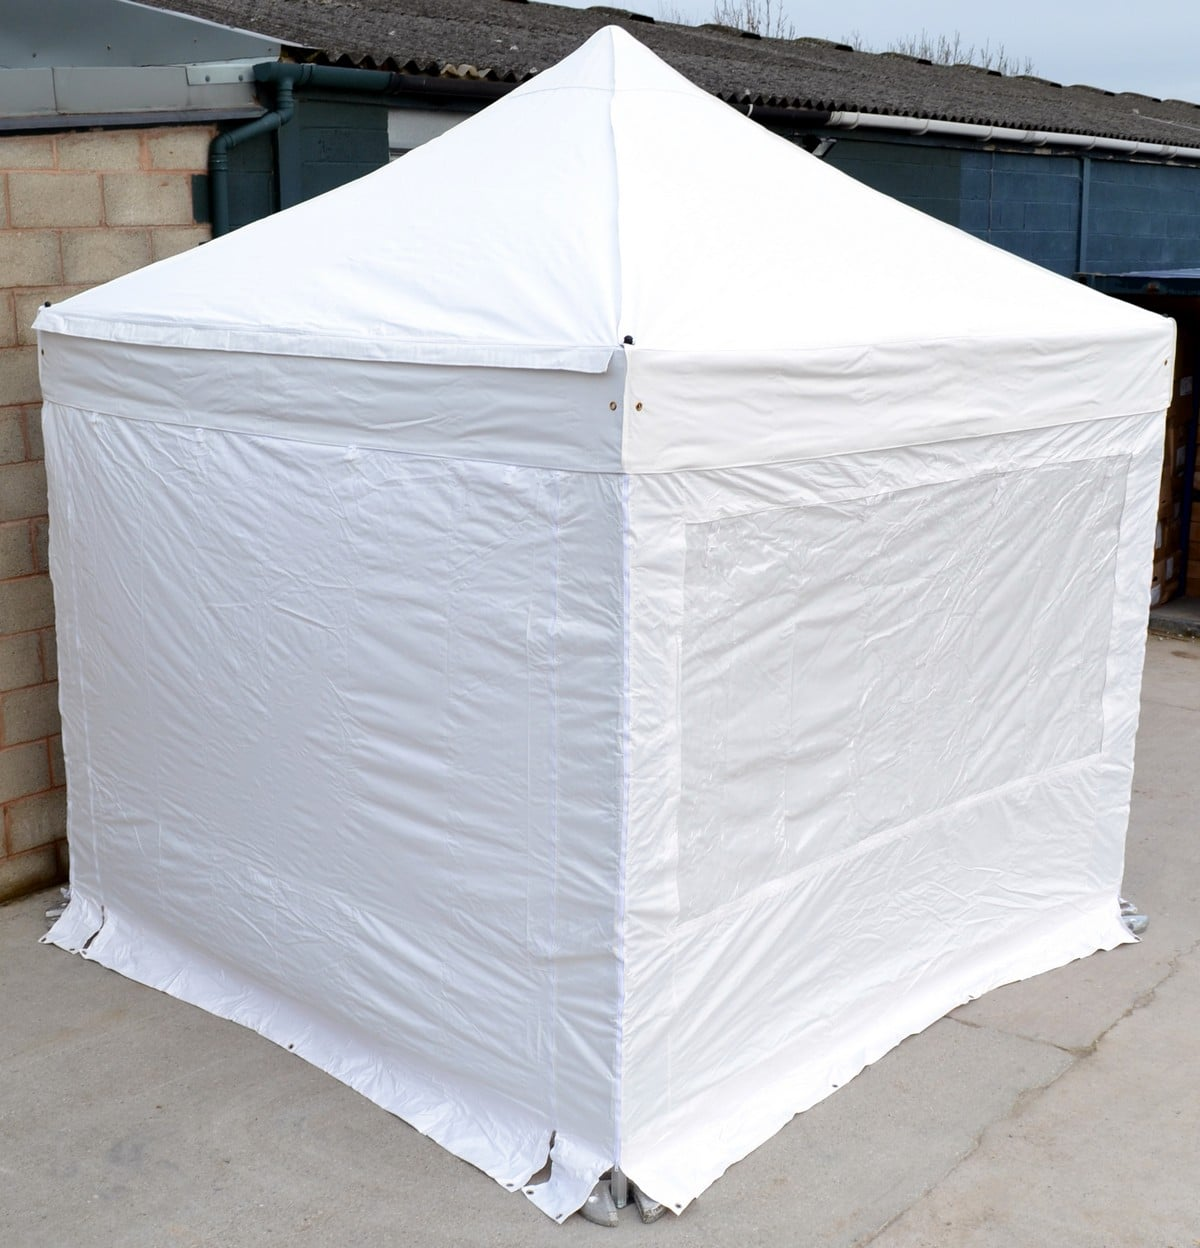 3m x 3m Protex 40 compact instant shelter